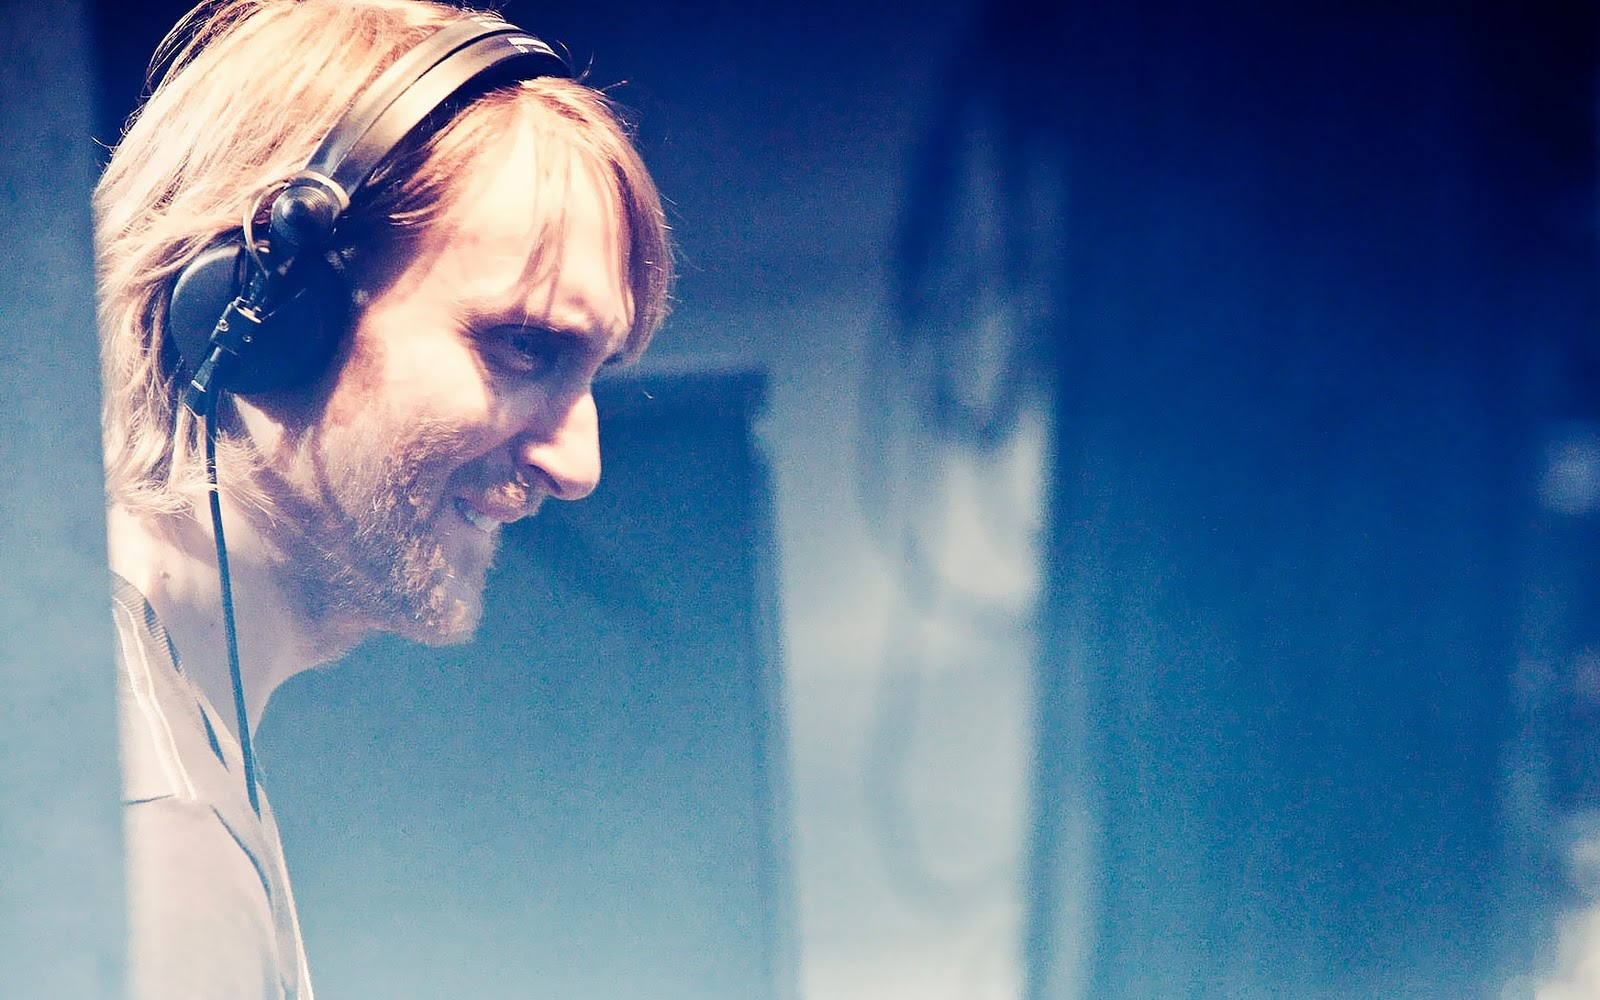 http://3.bp.blogspot.com/-TaUFzVRST5c/T_gwDpsFi-I/AAAAAAAAA0k/Qc9GRJZqT6U/s1600/Desktop-pictures-david-guetta-wallpapers-photos-david-guetta-wallpaper-7.jpg